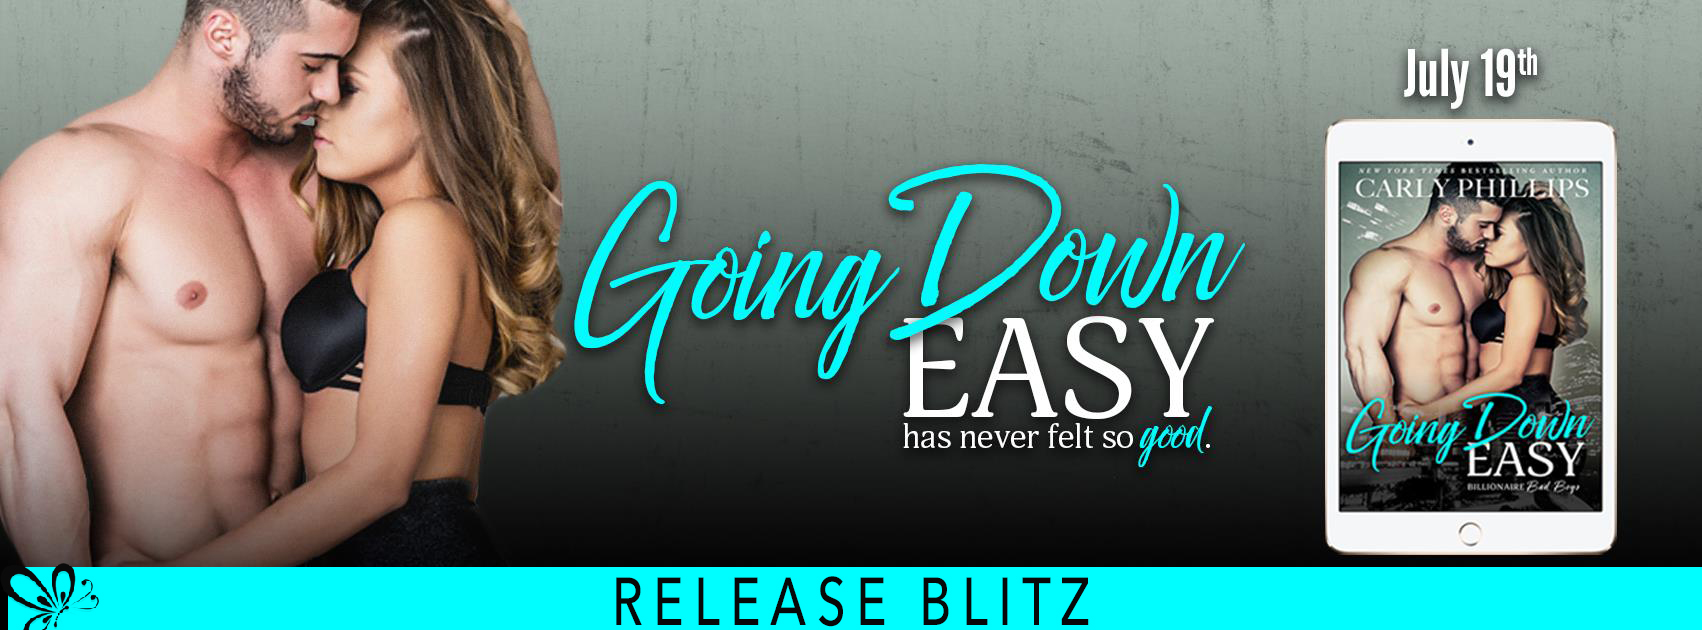 Release Blitz: Going Down Easy by Carly Phillips